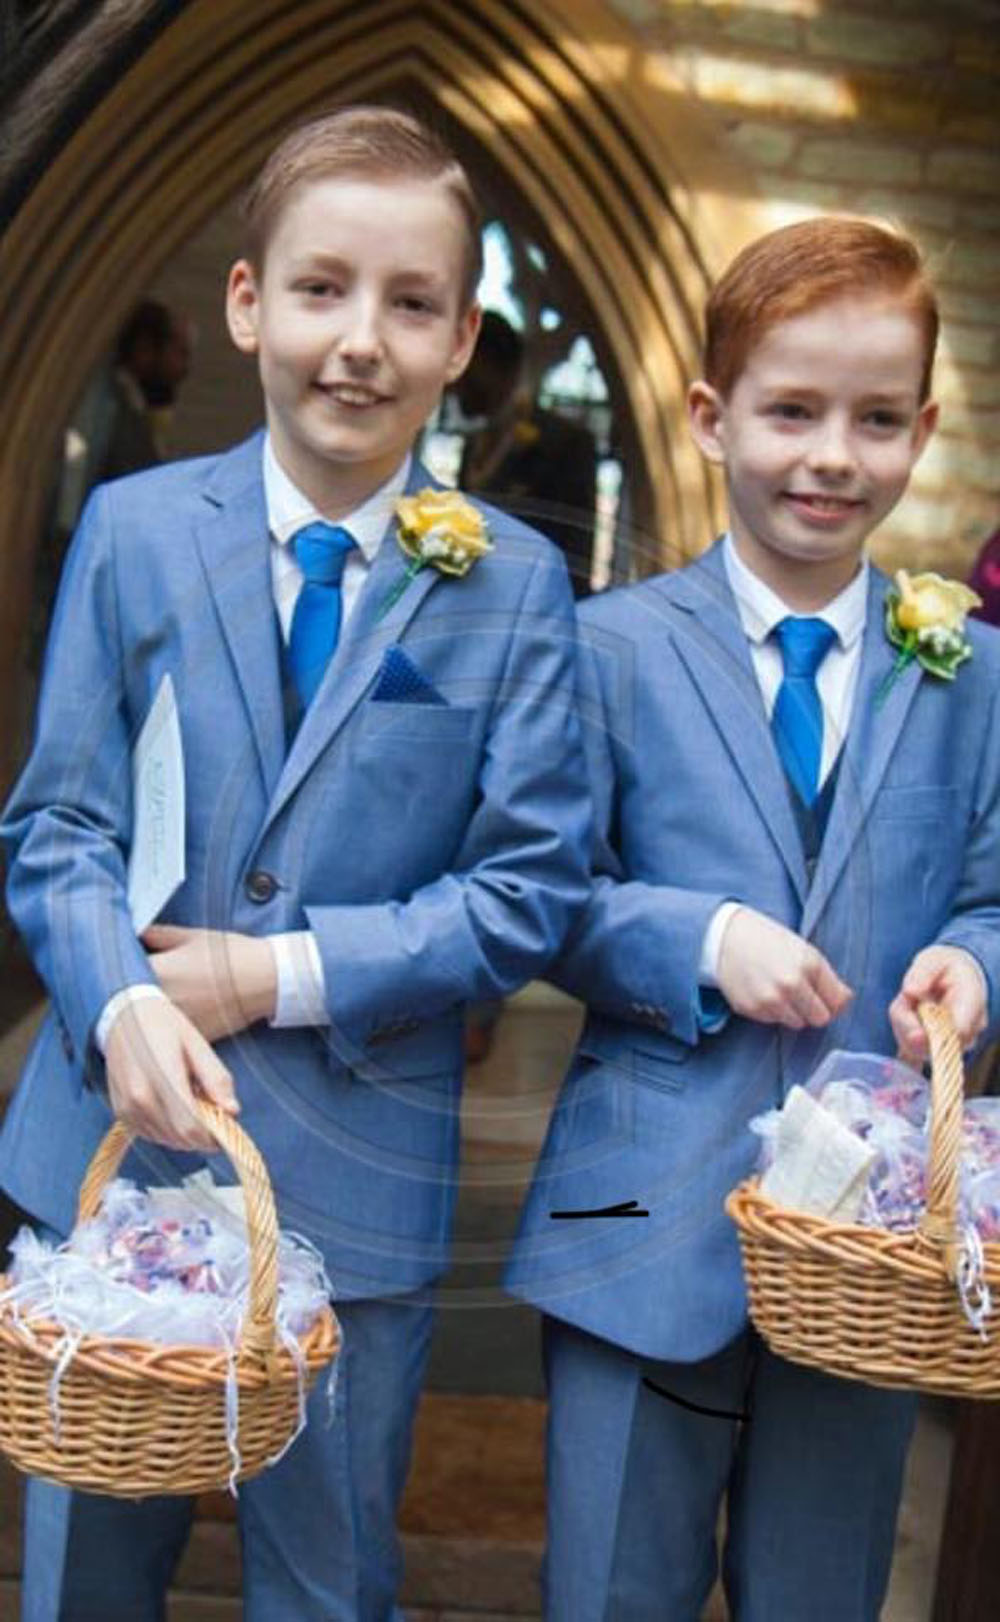 Flower girl baskets - also perfect for pageboys!